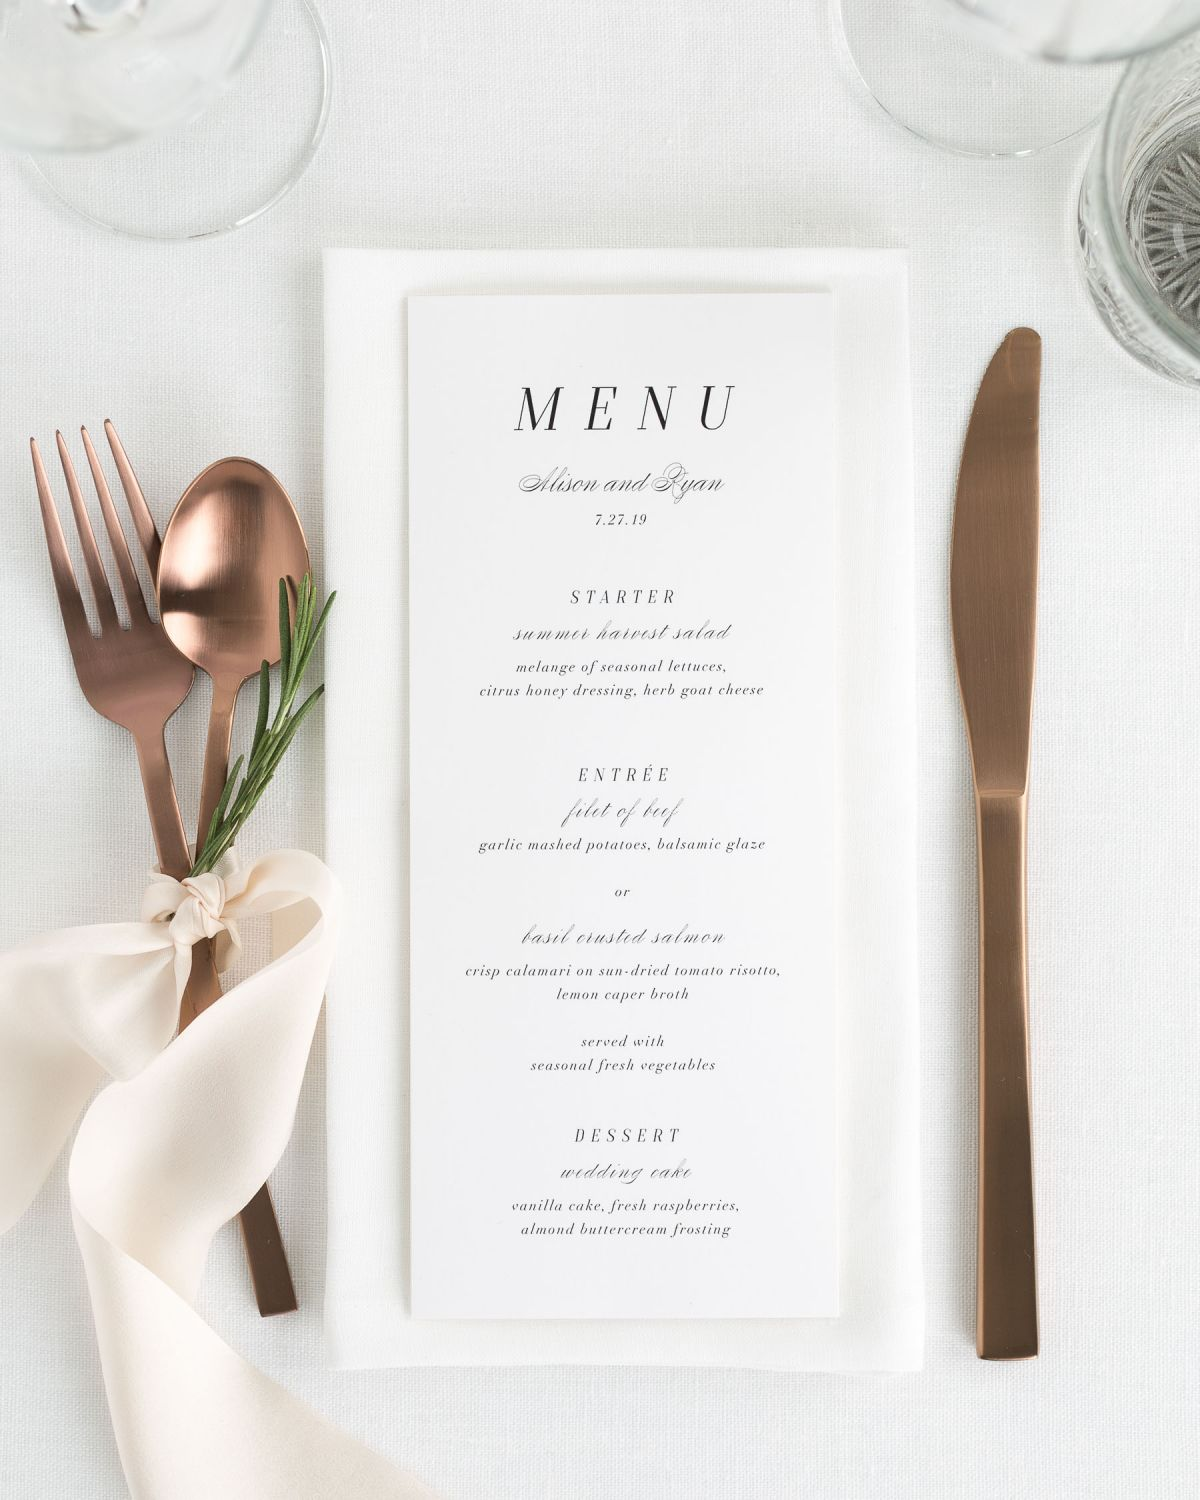 Simple Wedding Menus with Copper flatware